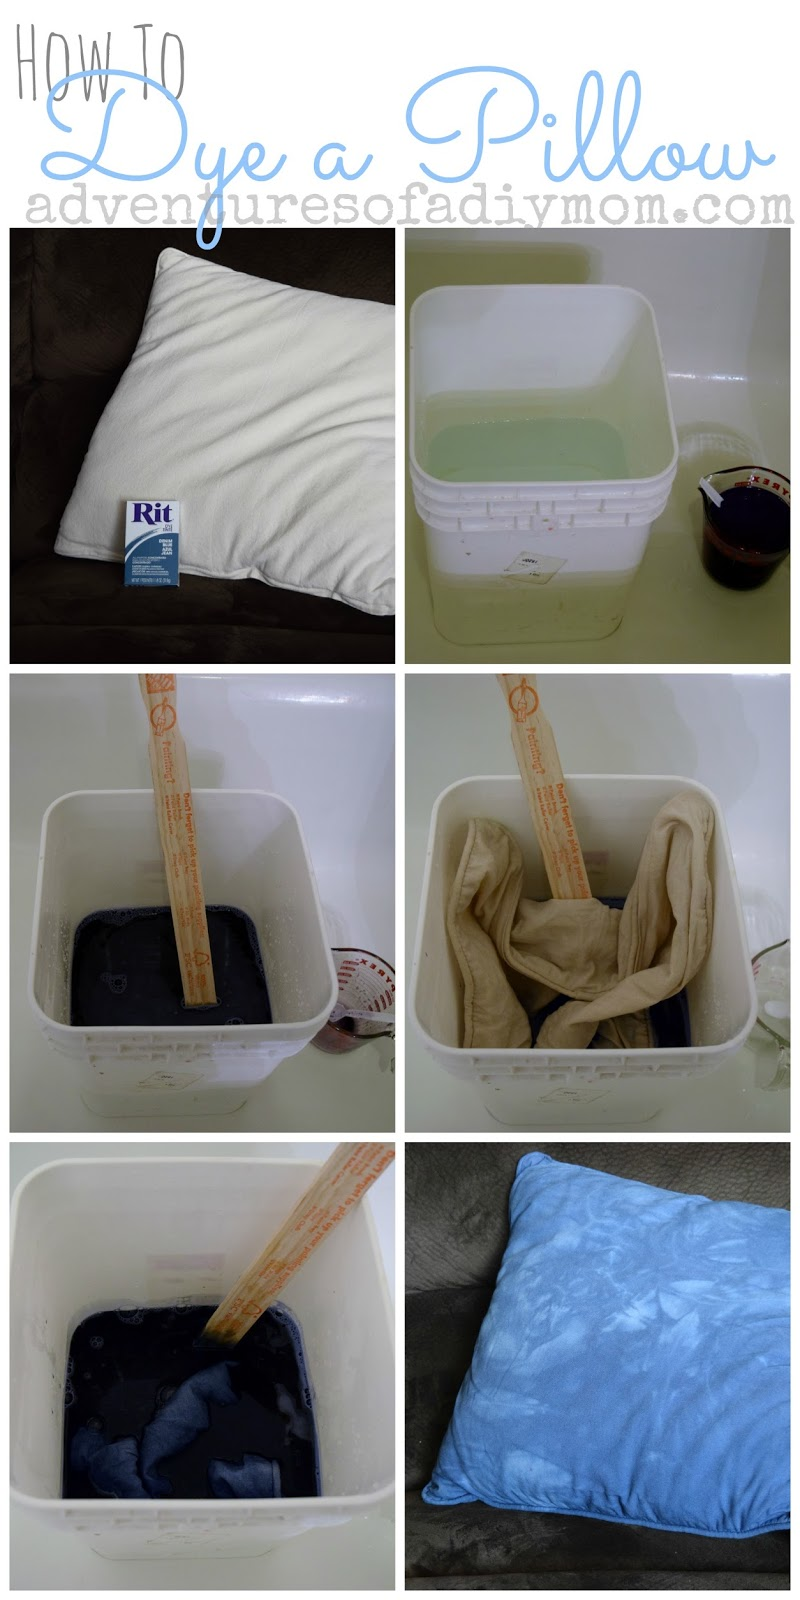 How to Dye a pillow - step by step